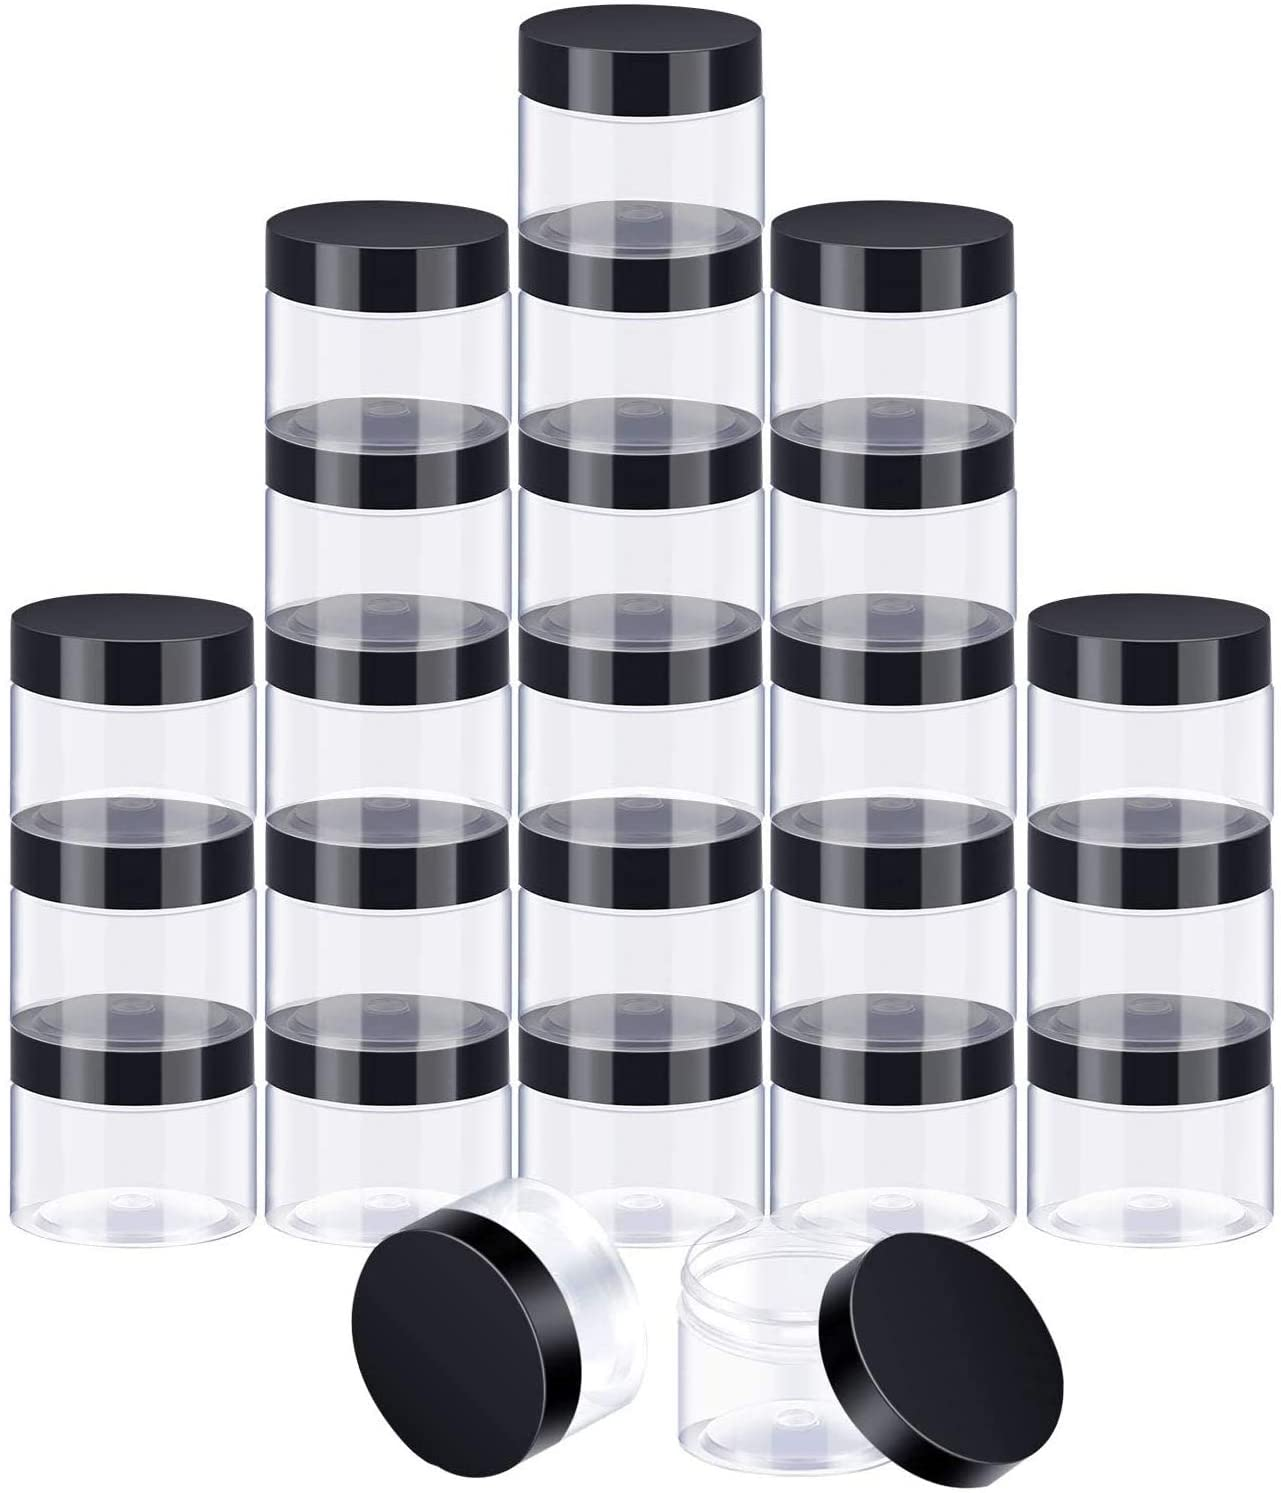 24 Pieces Clear Plastic Round Storage Jars Wide-Mouth Plastic Containers Jars with Lids for Storage Liquid and Solid Products (Black Lid, 2 oz)